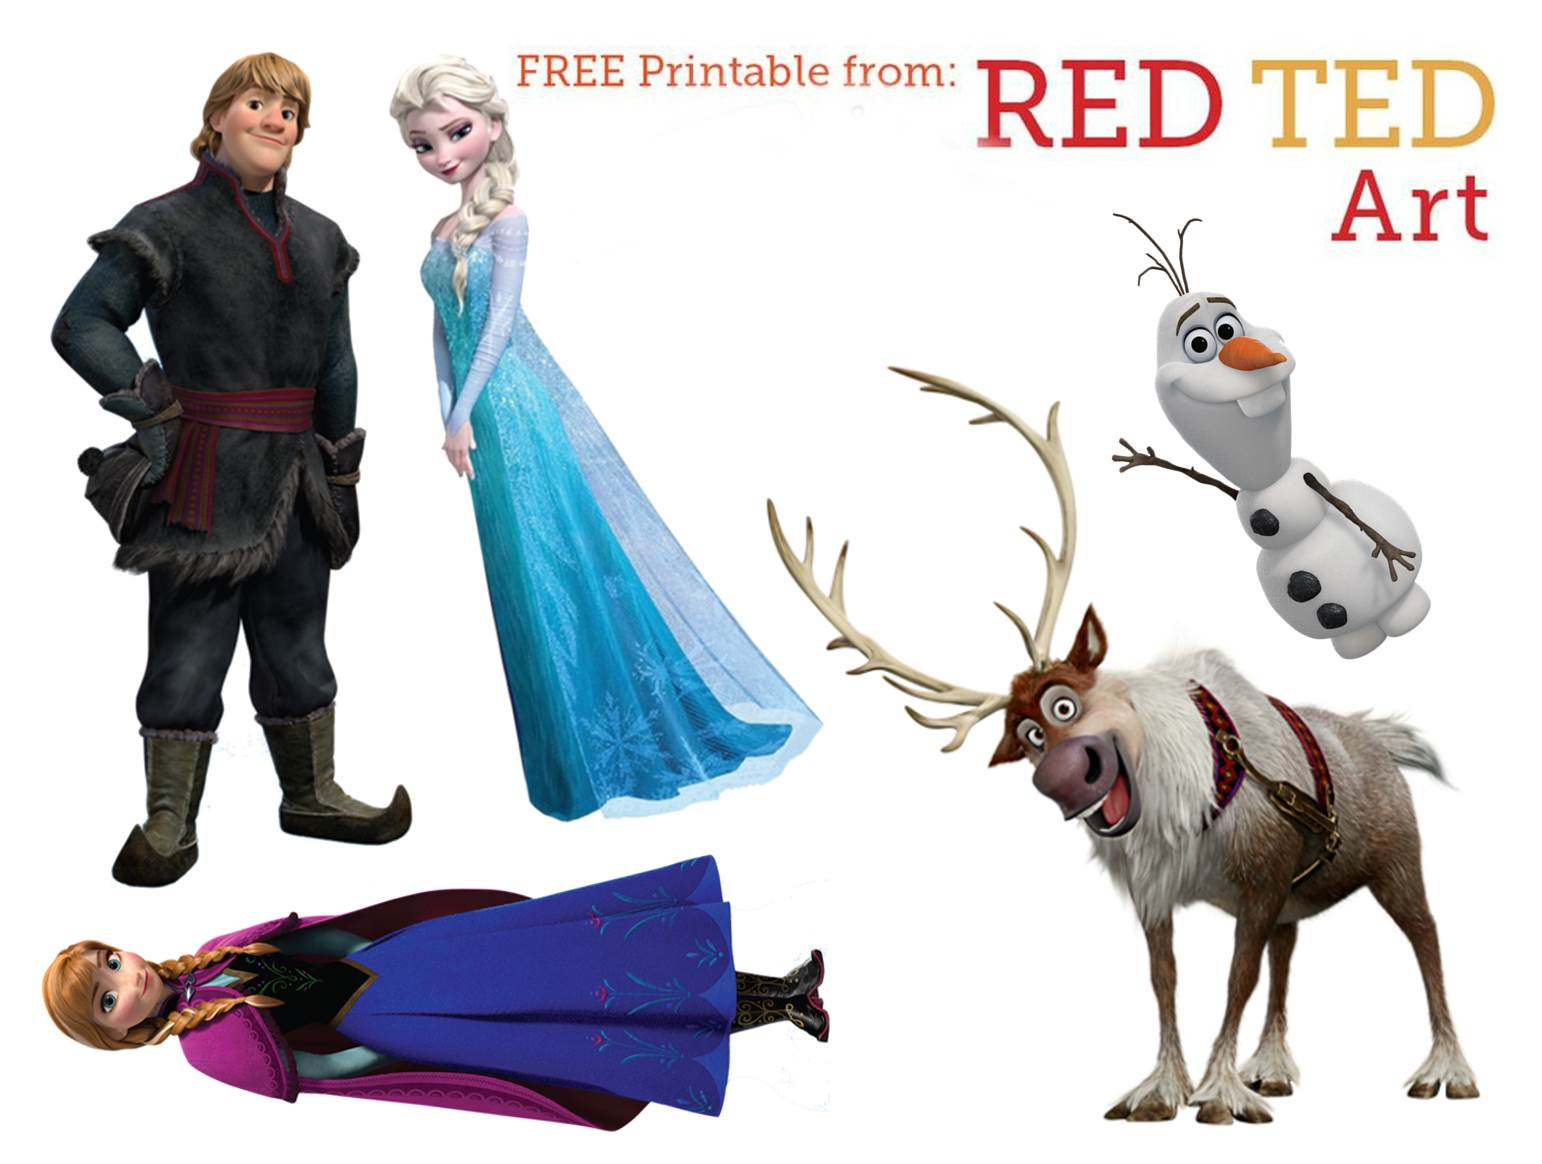 image relating to Free Olaf Printable named Disneys Frozen Craft - Puppets - Crimson Ted Artwork